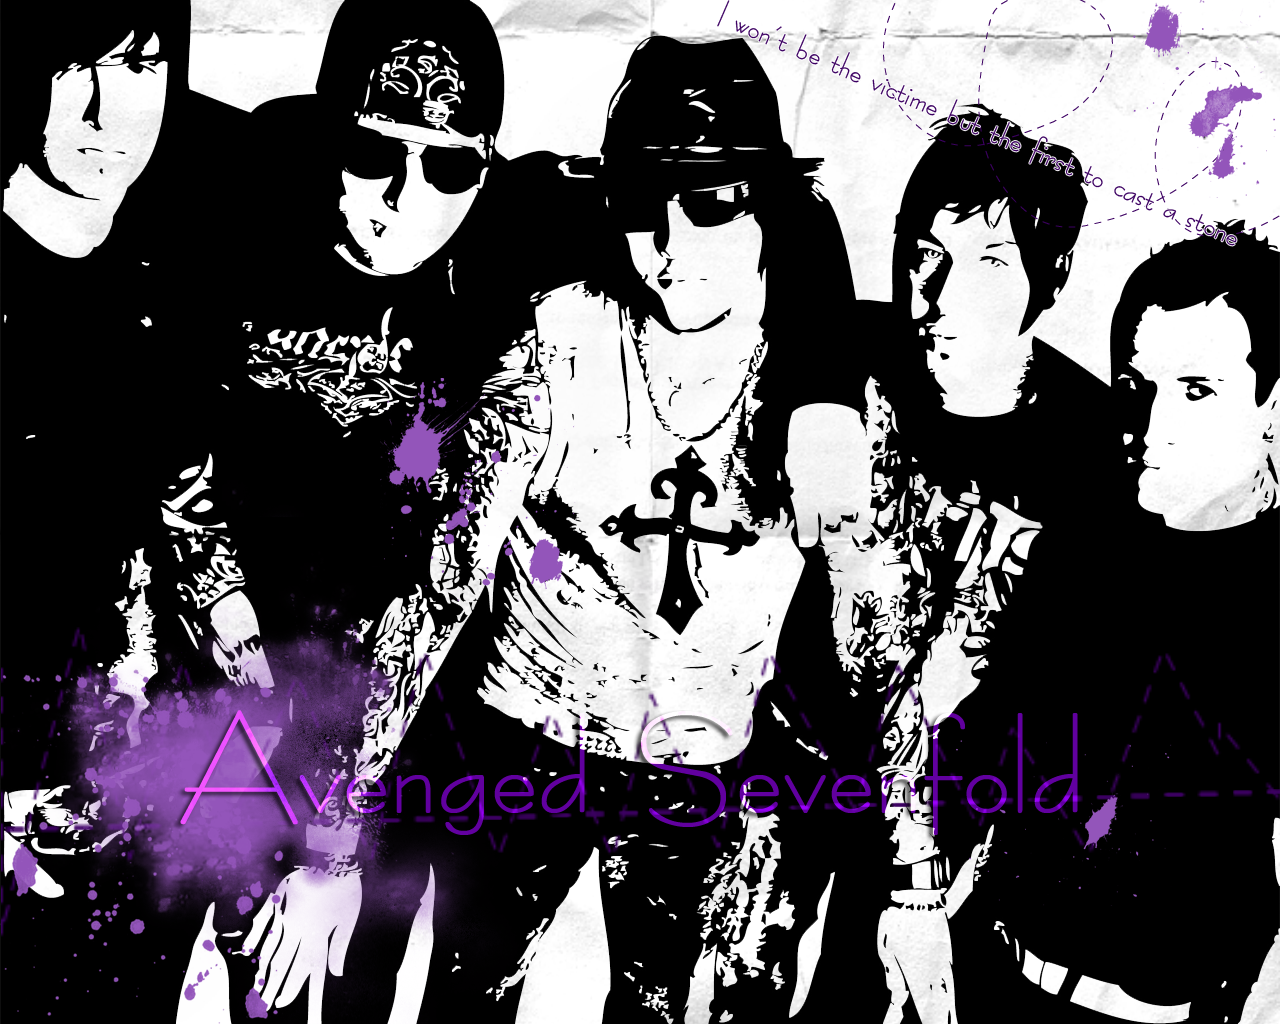 Wallpaper Avenged Sevenfold My image 1280x1024